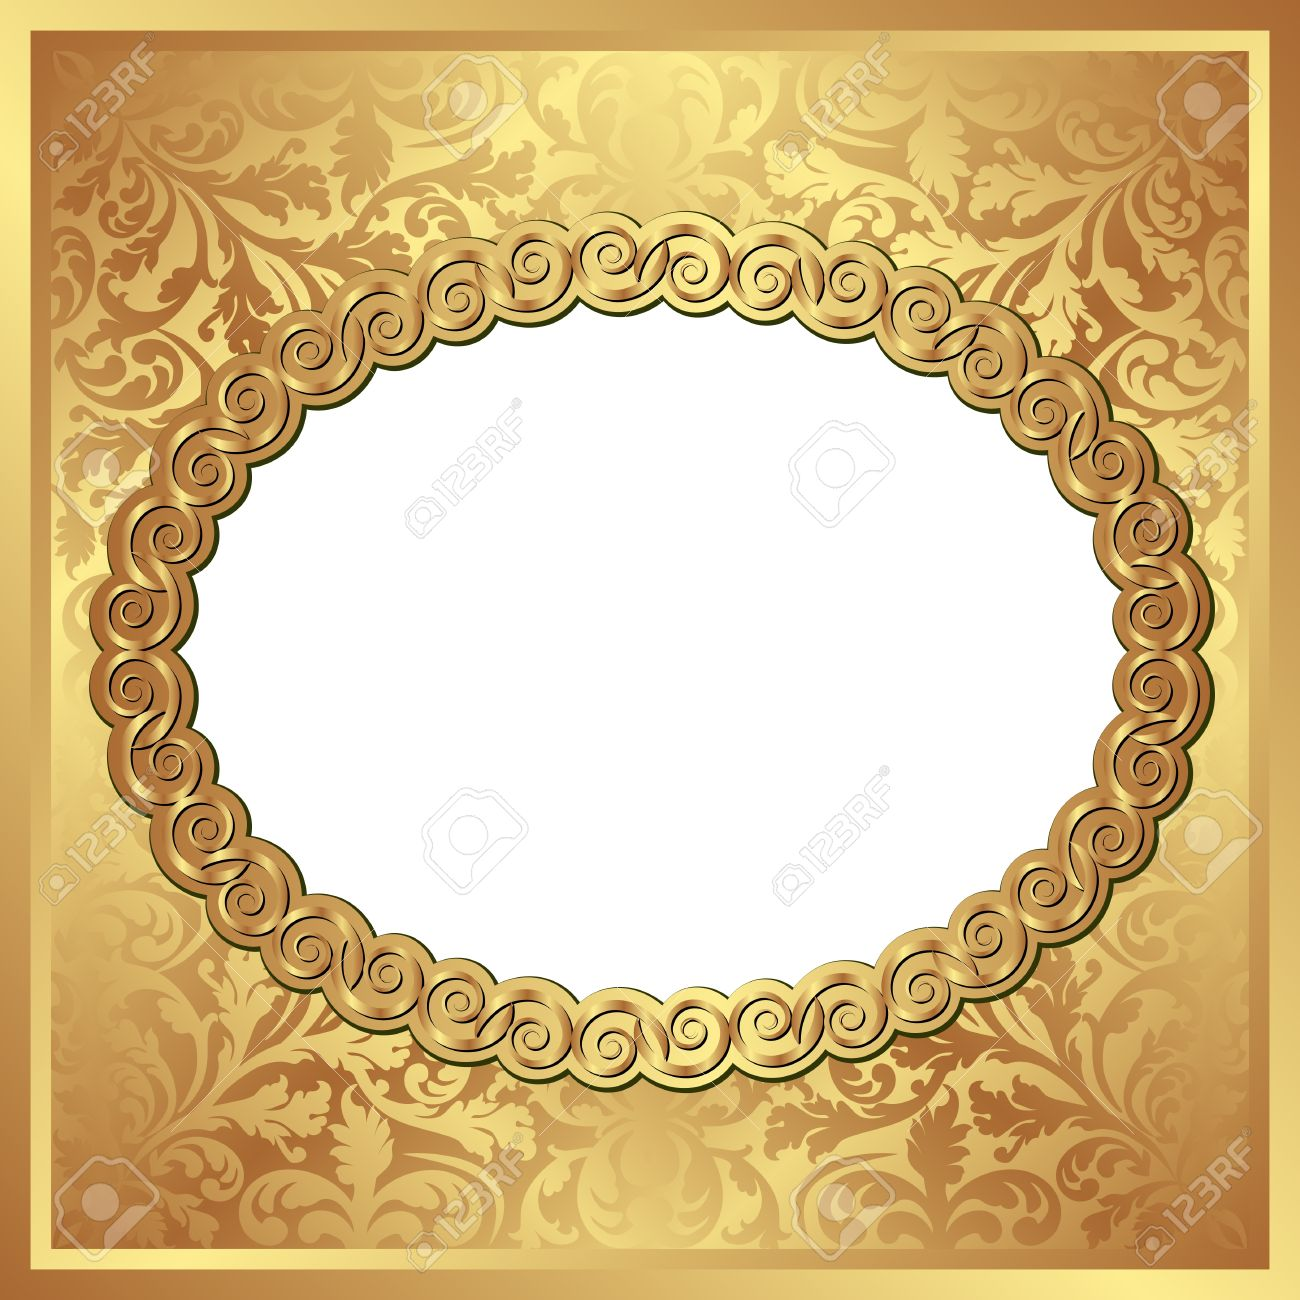 Golden Background With Oval Frame And Transparent Space Insert For Picture